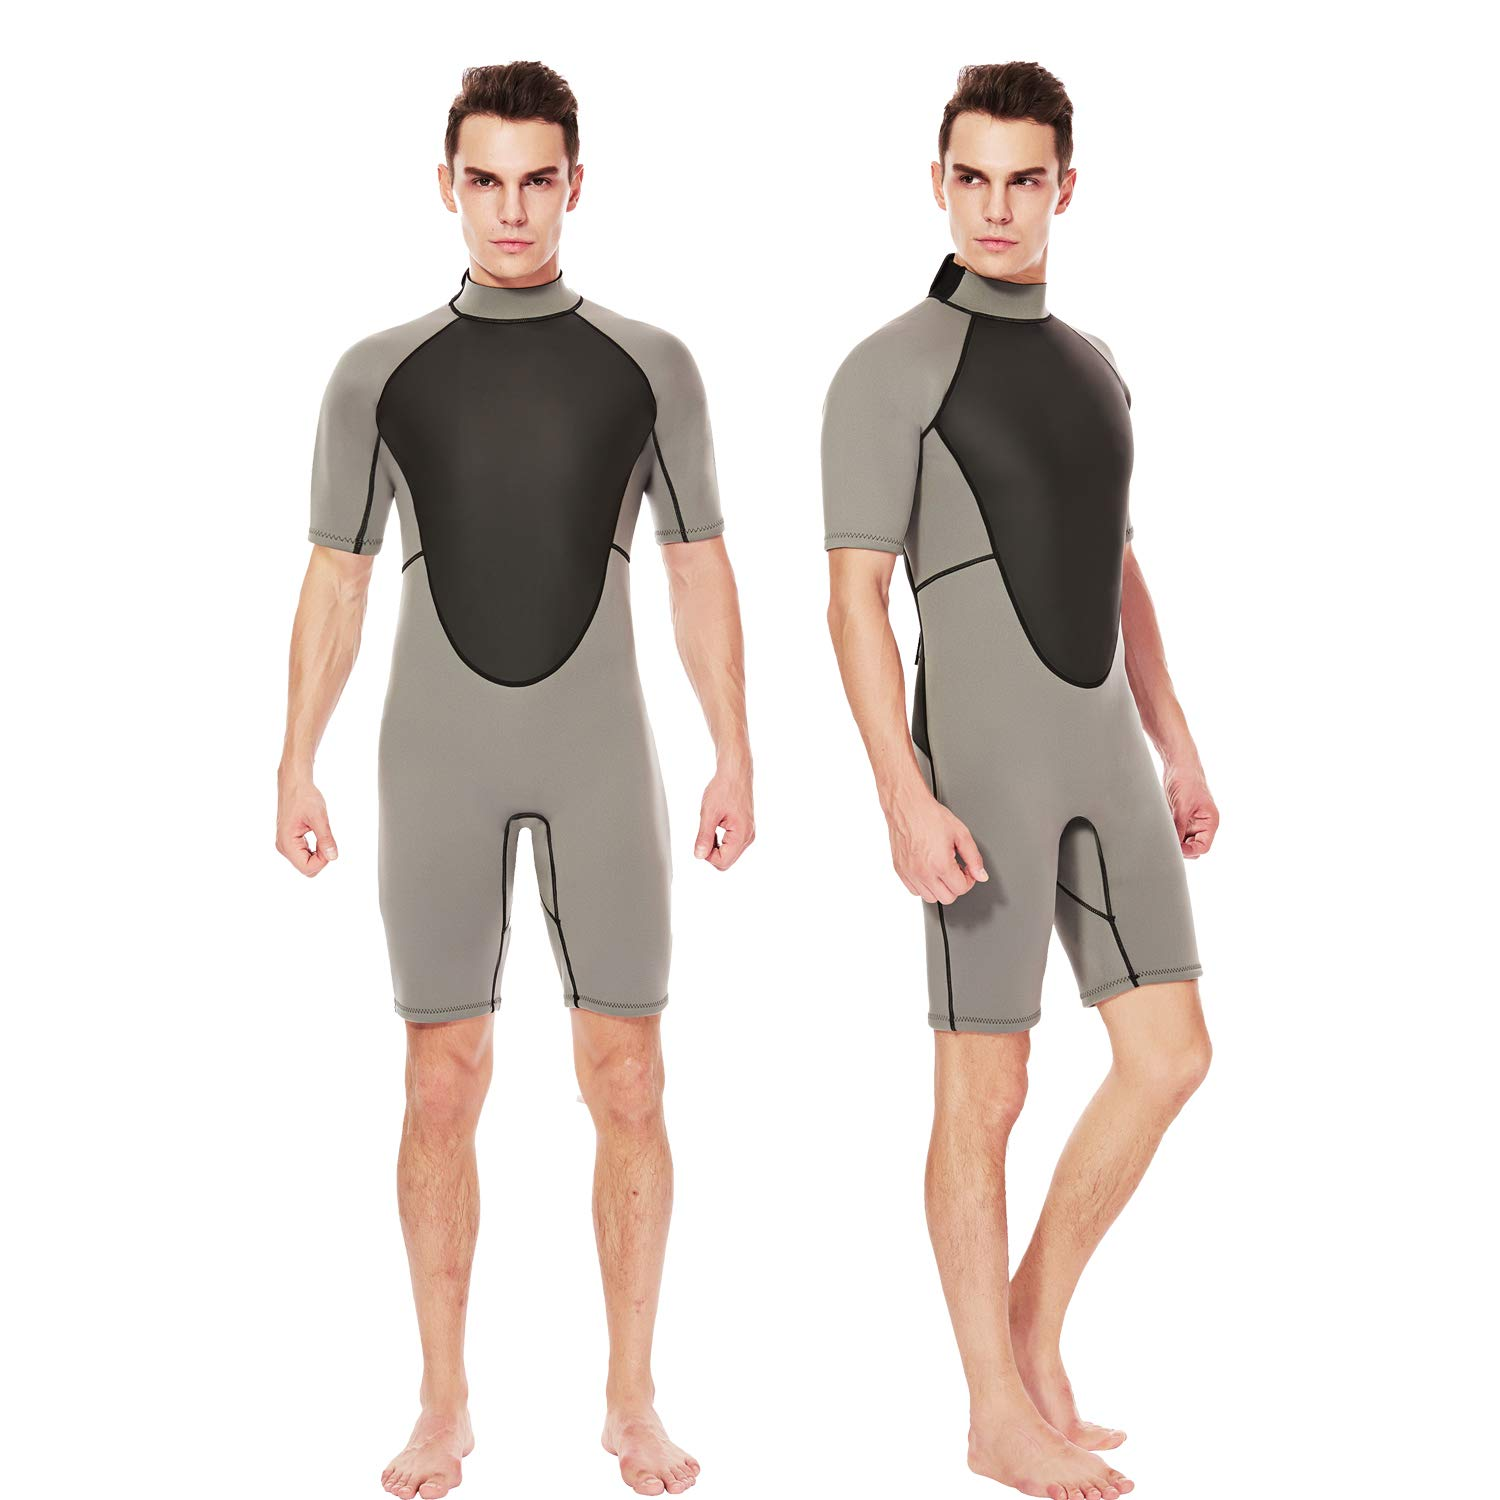 Flexel Adult's Shorty Men Wetsuits 3mm Neoprene Back Zip Diving Suits Cold Water and Outdoors Sports for Swimming Surfing Snorkeling Canoeing (3mm Grey, Medium) by Flexel